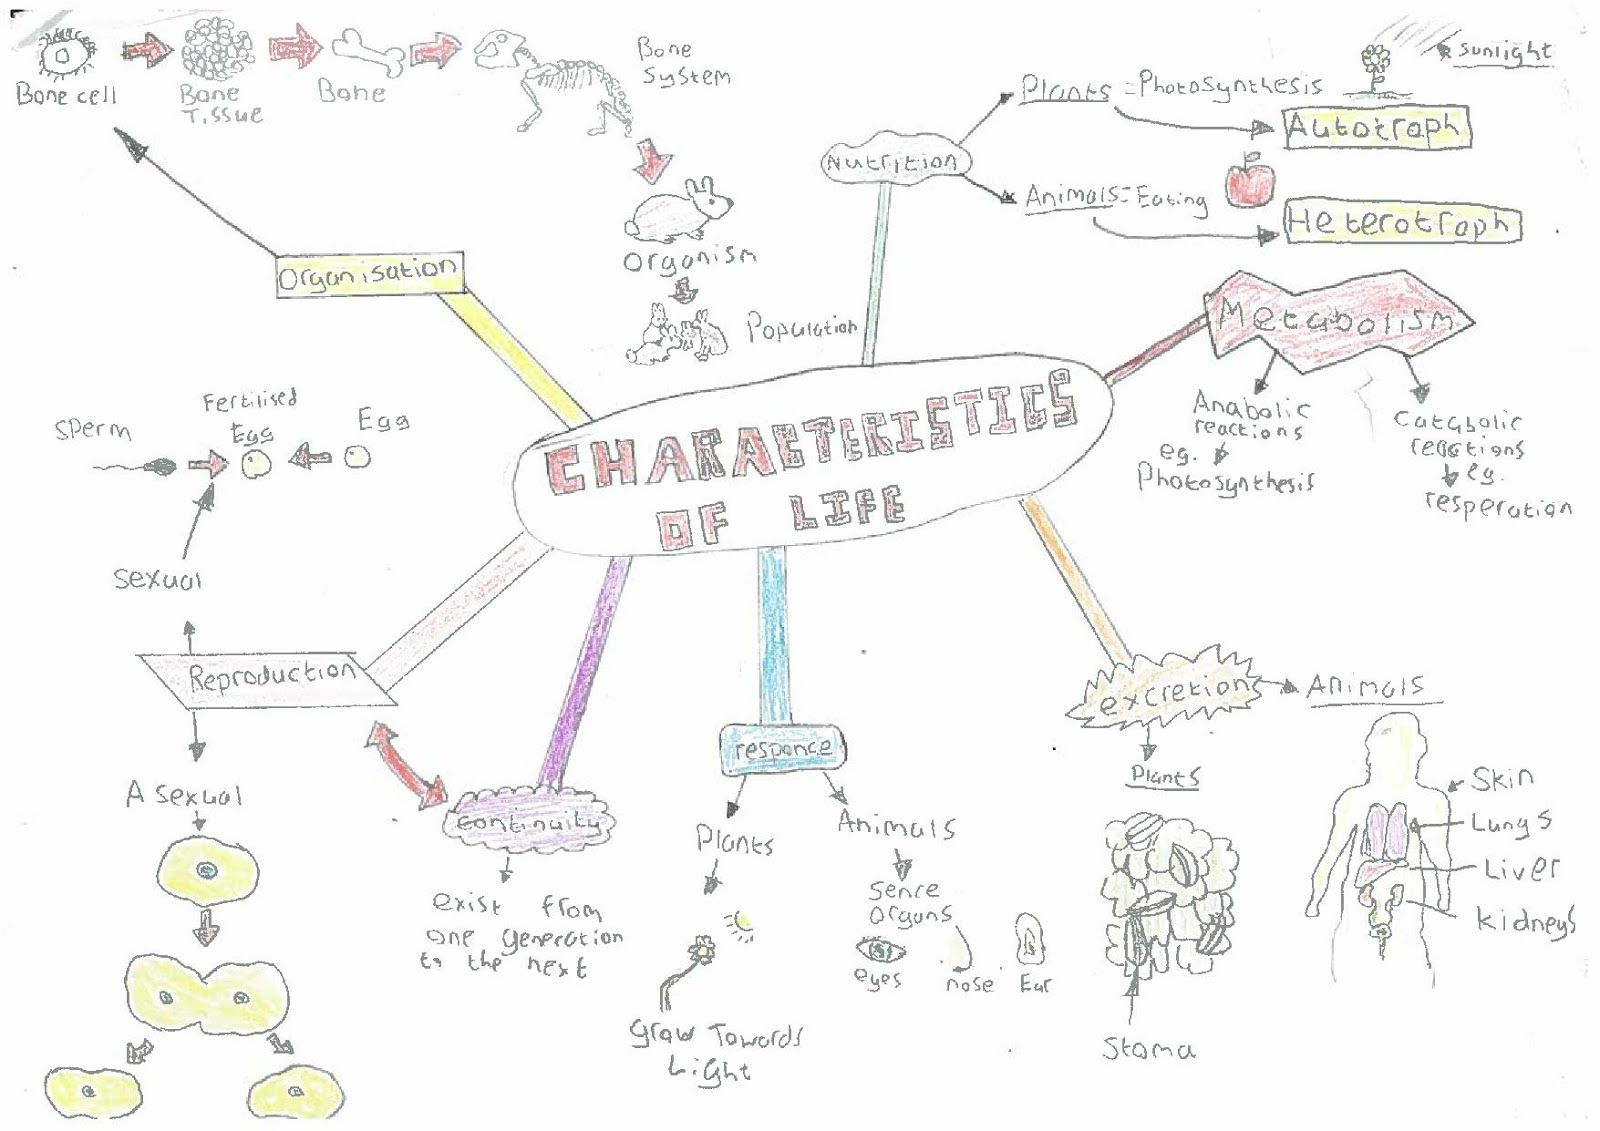 Magh sci leaving cert biology charachteristics of life dara sweeney ccuart Image collections